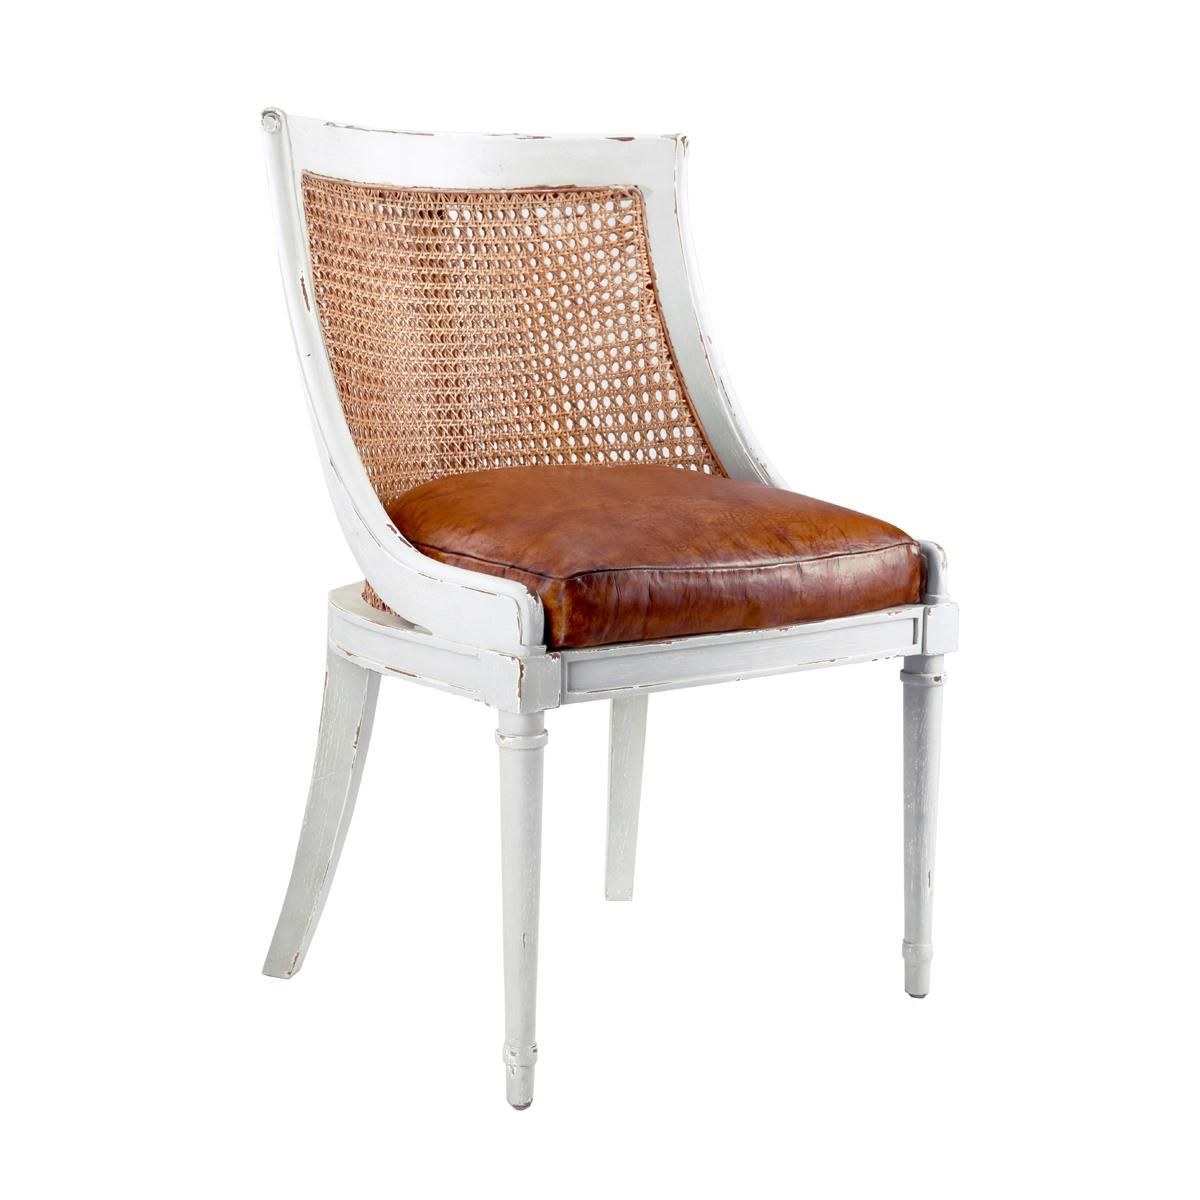 Swedish Neoclassical Chair | Neoclassical, Dining chairs and Raised ...